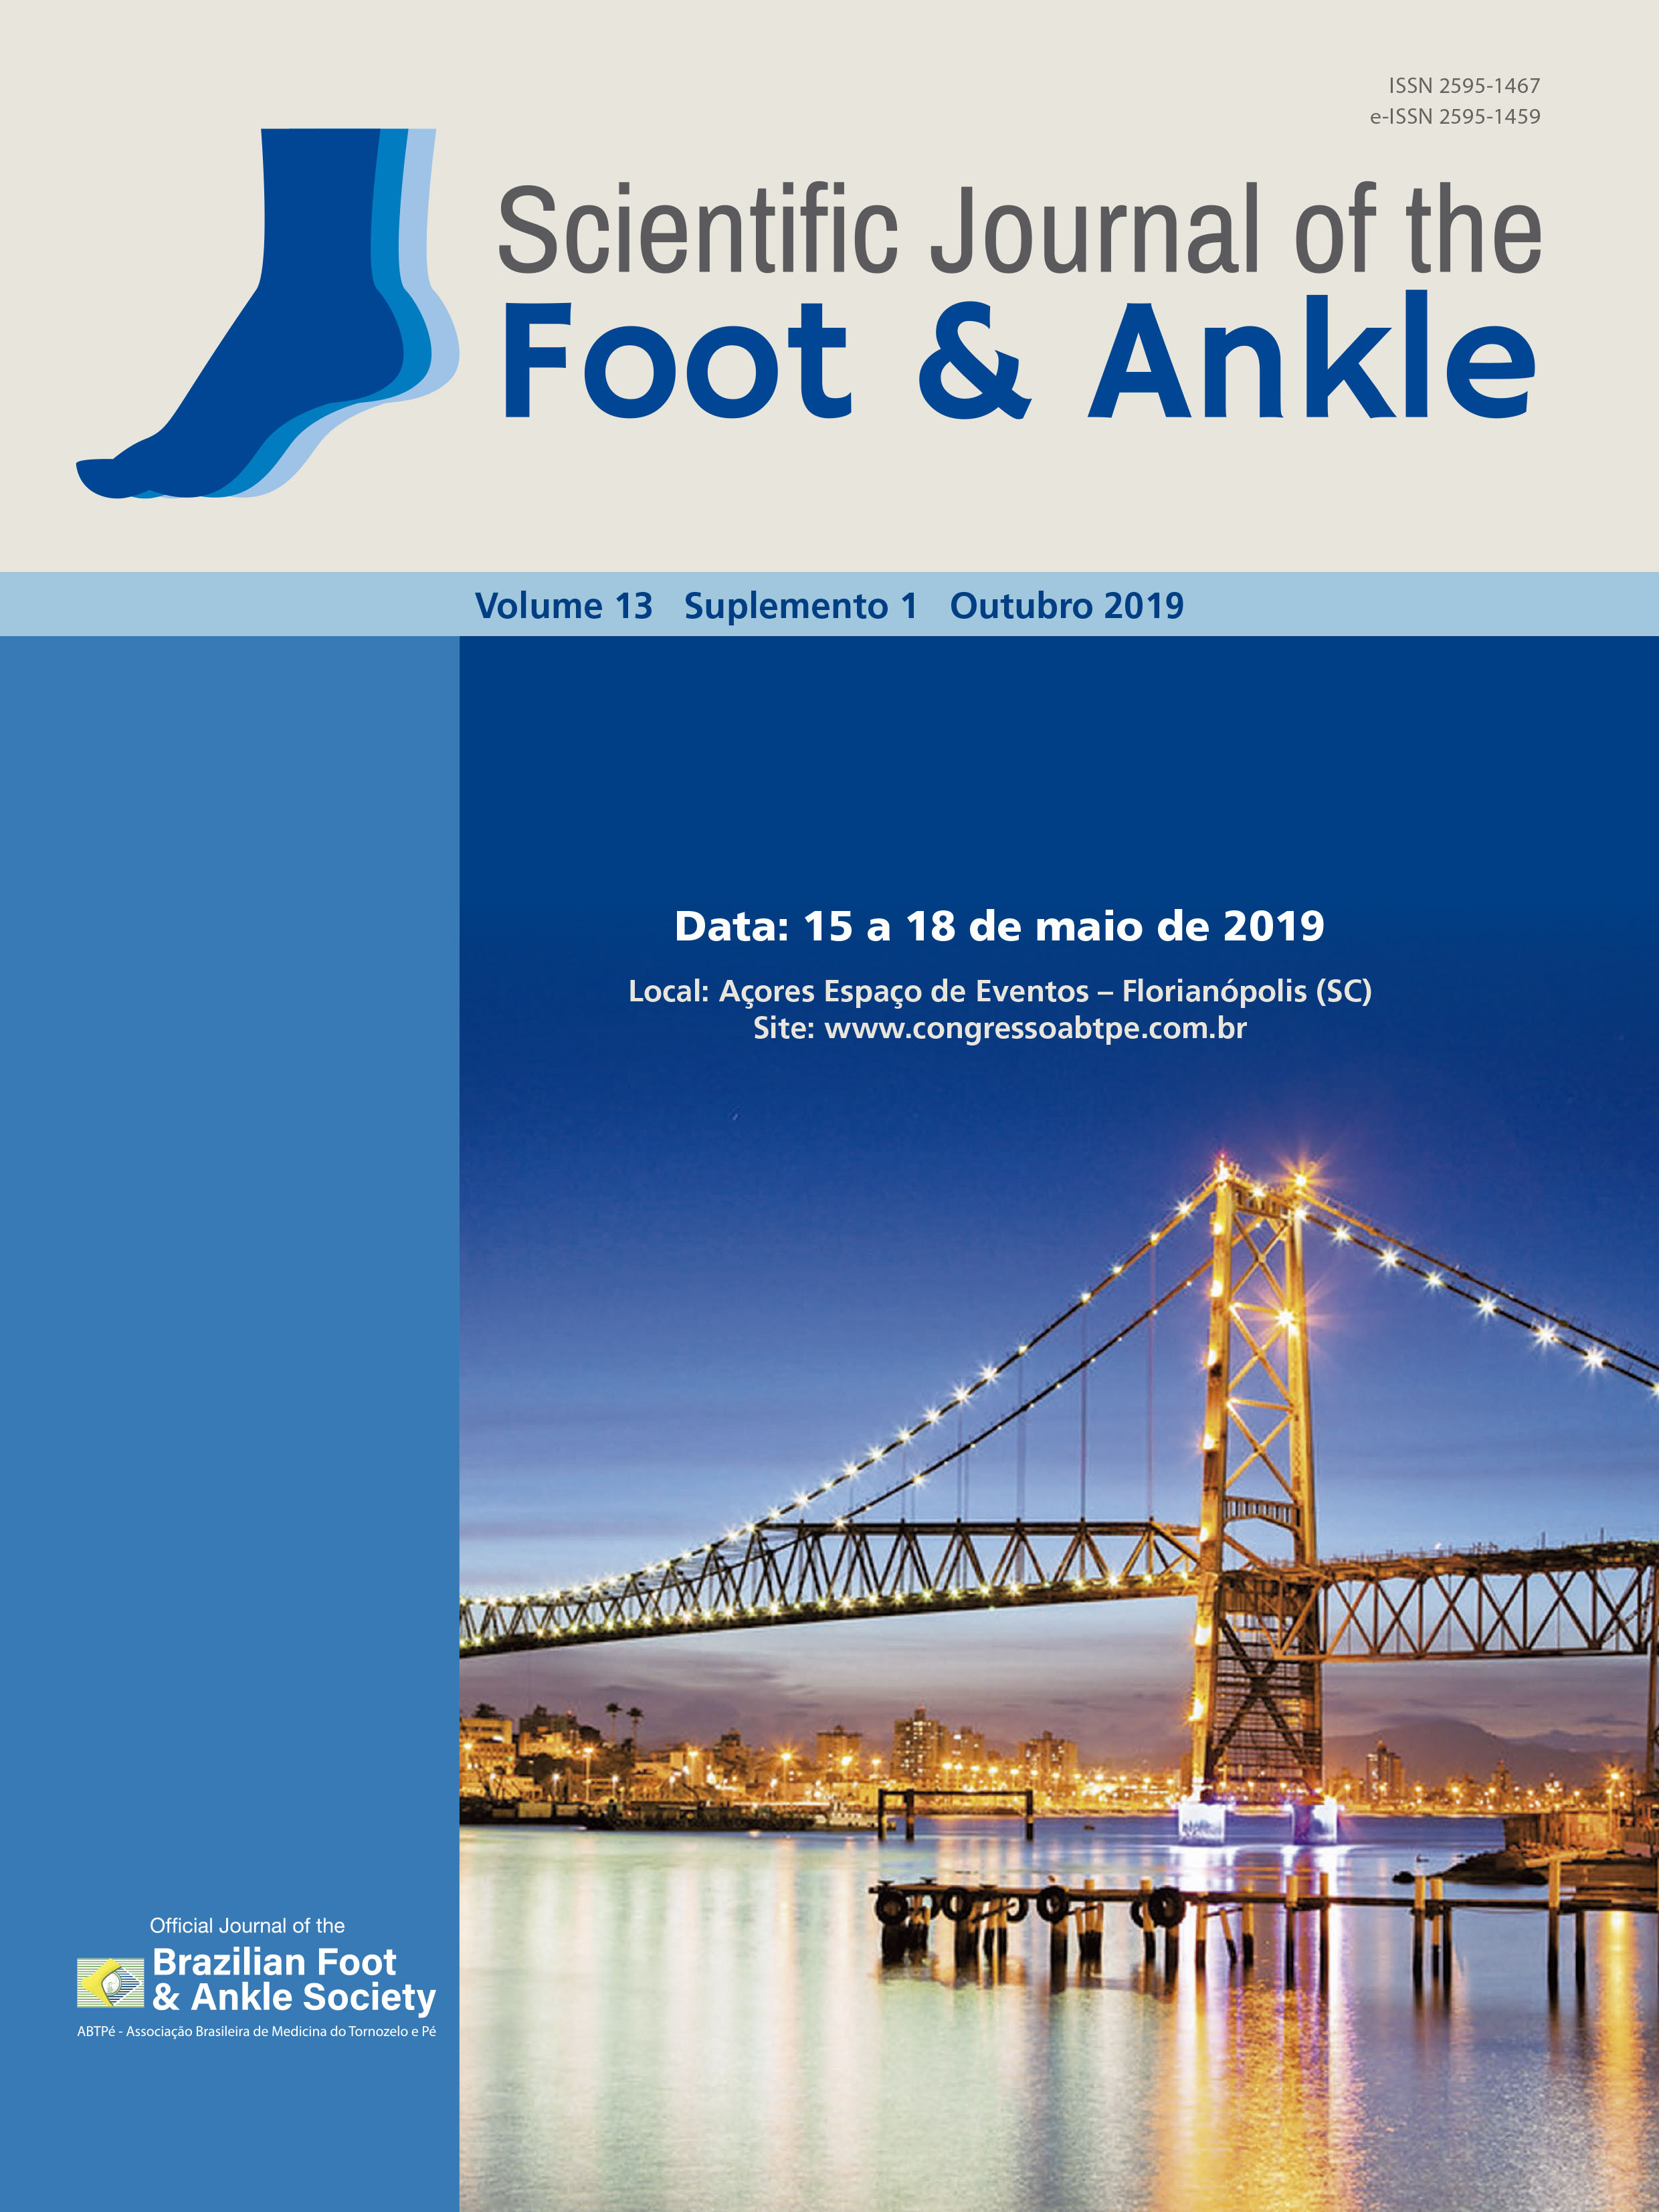 View Vol. 13 No. Supl 1 (2019): Proceedings of the 19th Brazilian Ankle and Foot Medicine and Surgery Congress